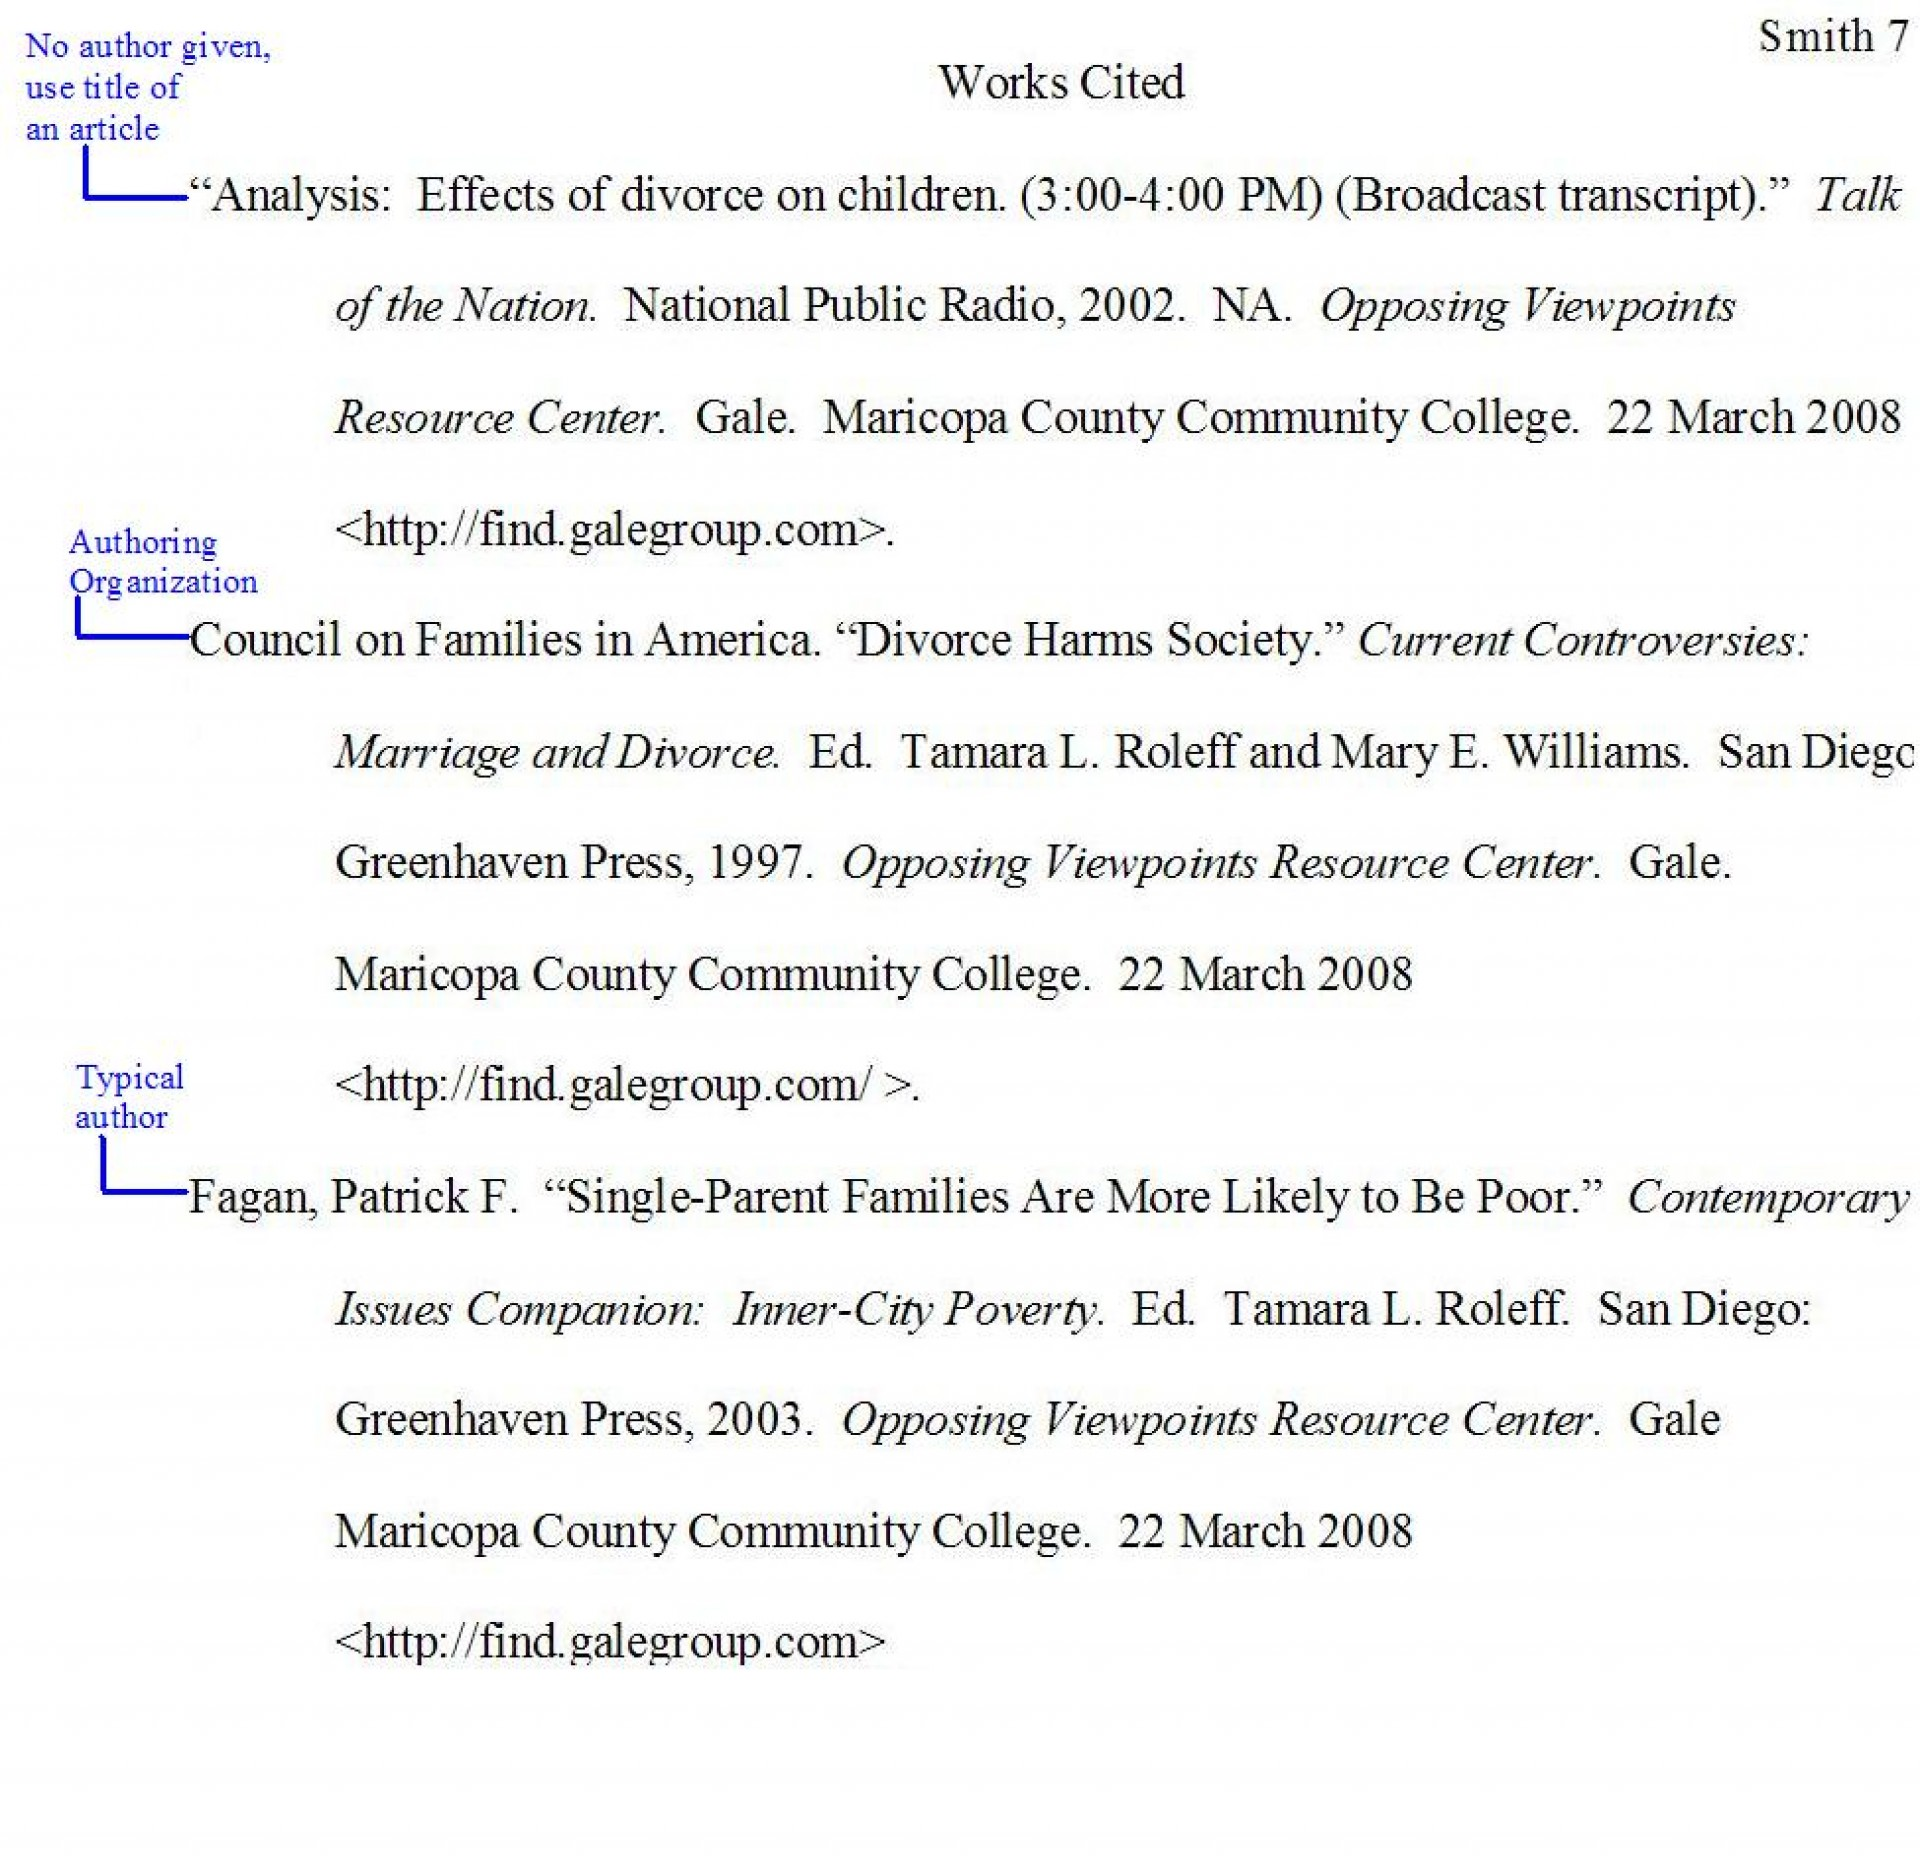 002 Research Paper How To Do Mla Works Cited For Samplewrkctd Unusual A Page 1920